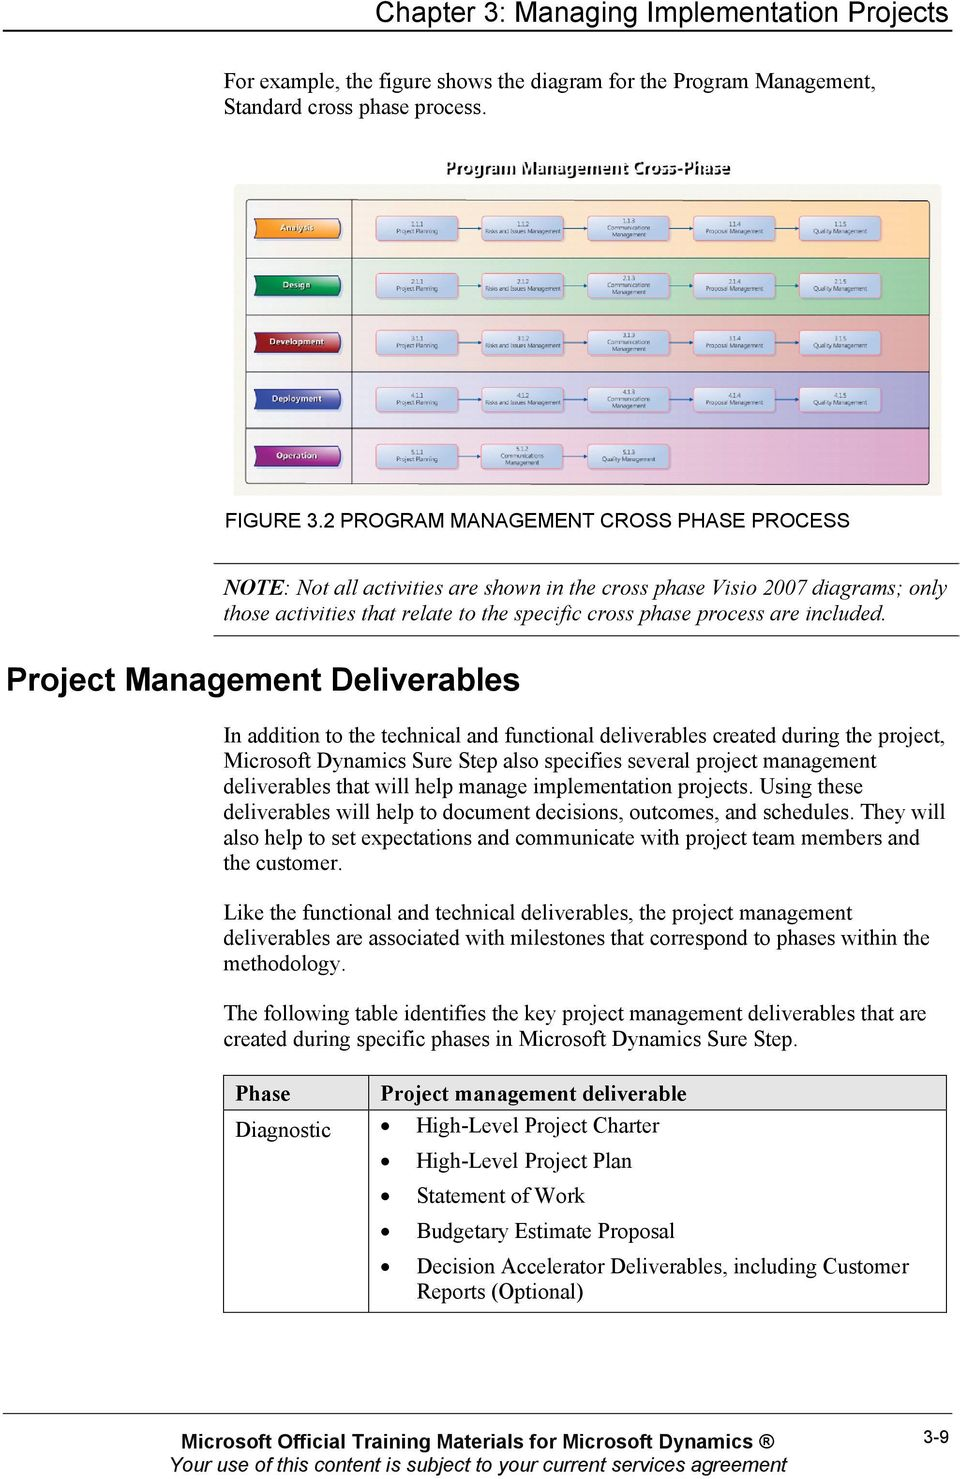 Project Management Deliverables In addition to the technical and functional deliverables created during the project, Microsoft Dynamics Sure Step also specifies several project management